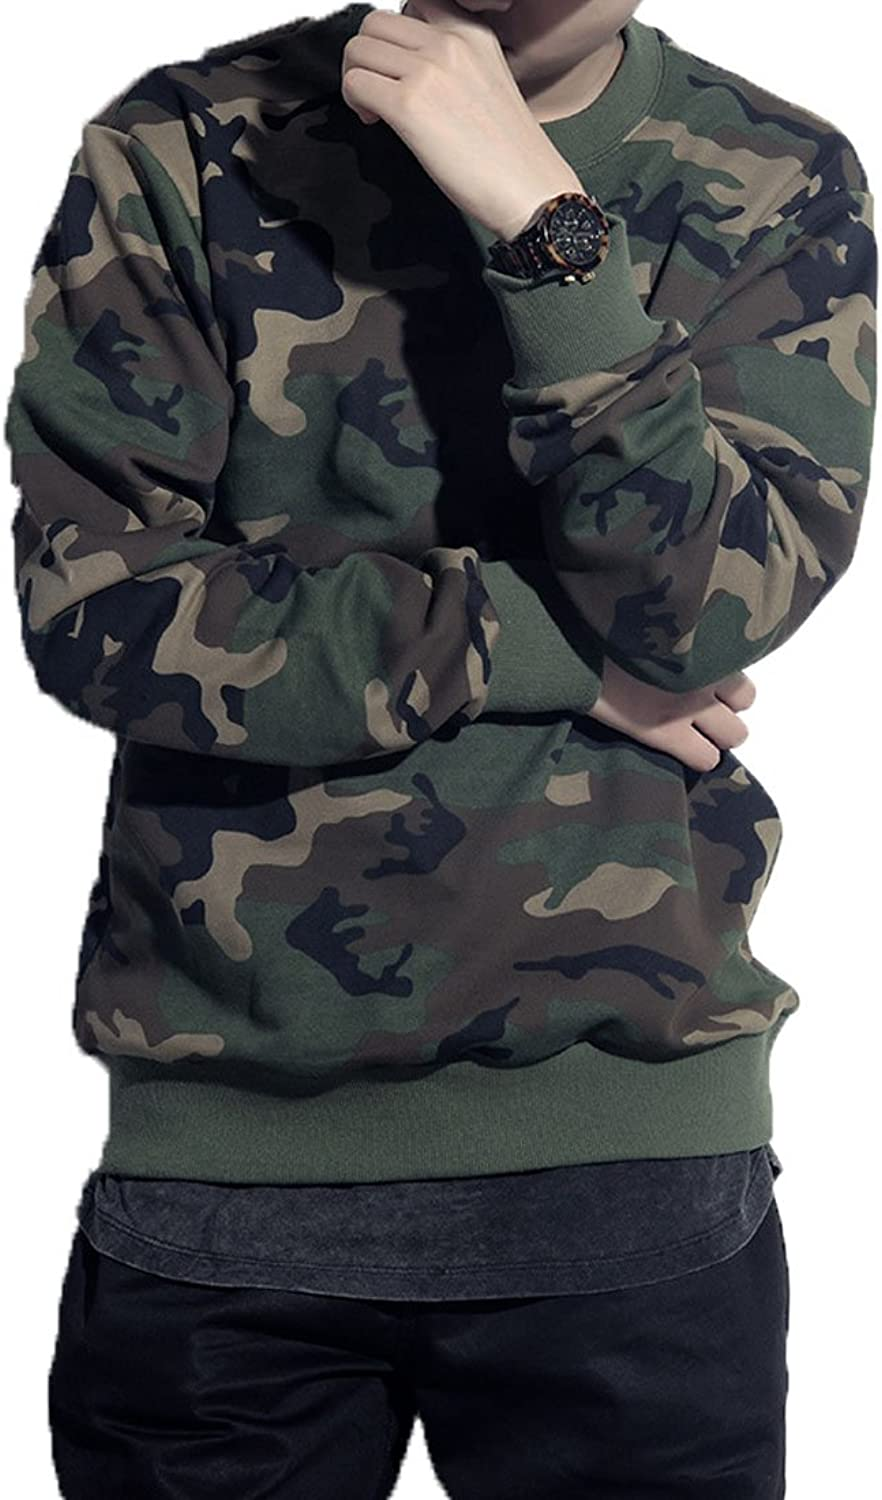 Teamoluna Camouflage Long Sleeve ONeck Shirt Sweater